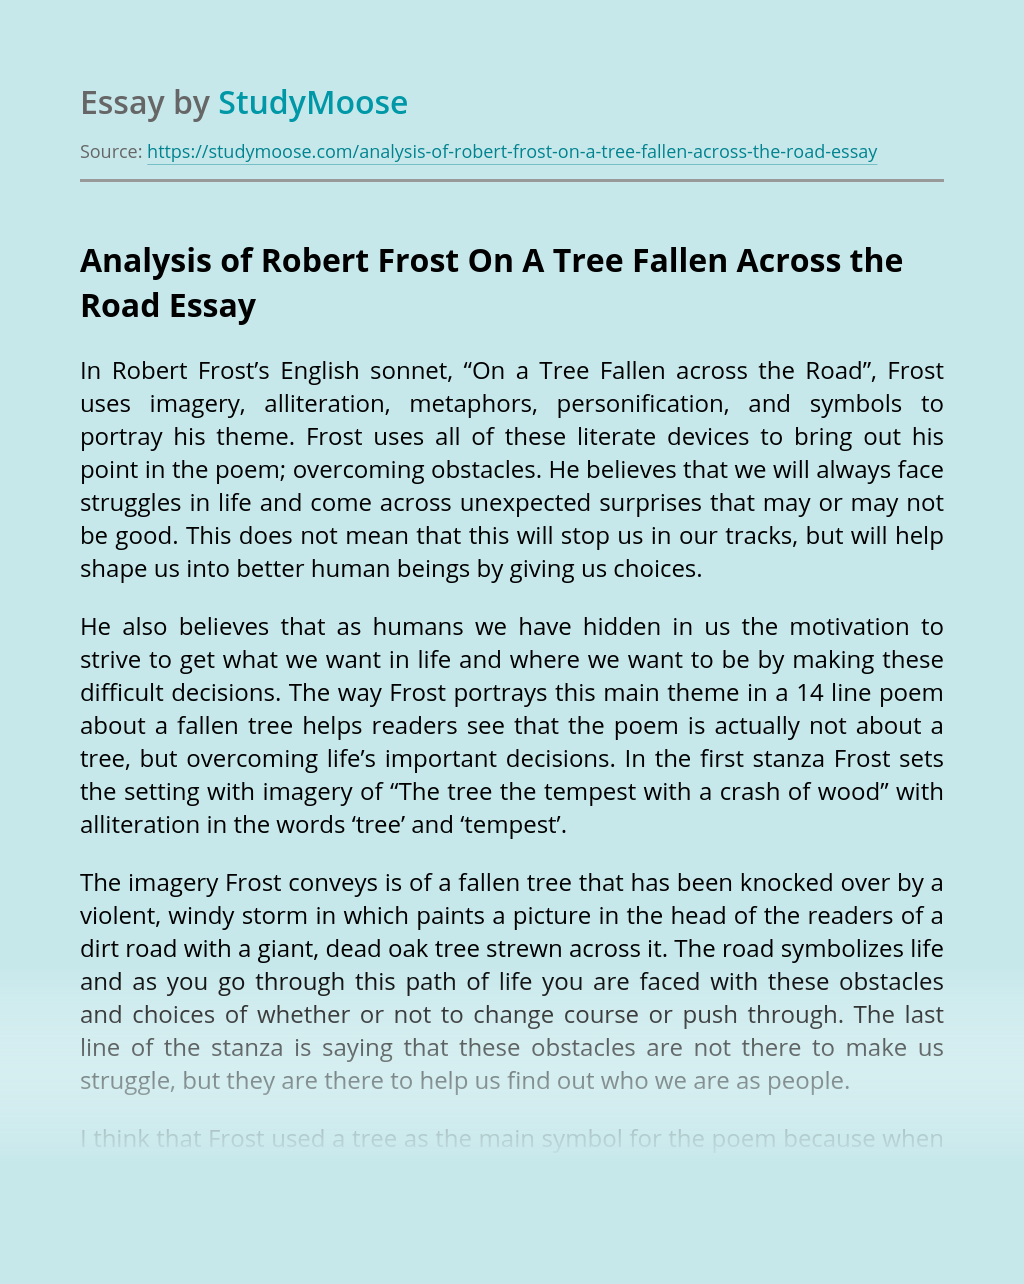 Analysis of Robert Frost On A Tree Fallen Across the Road